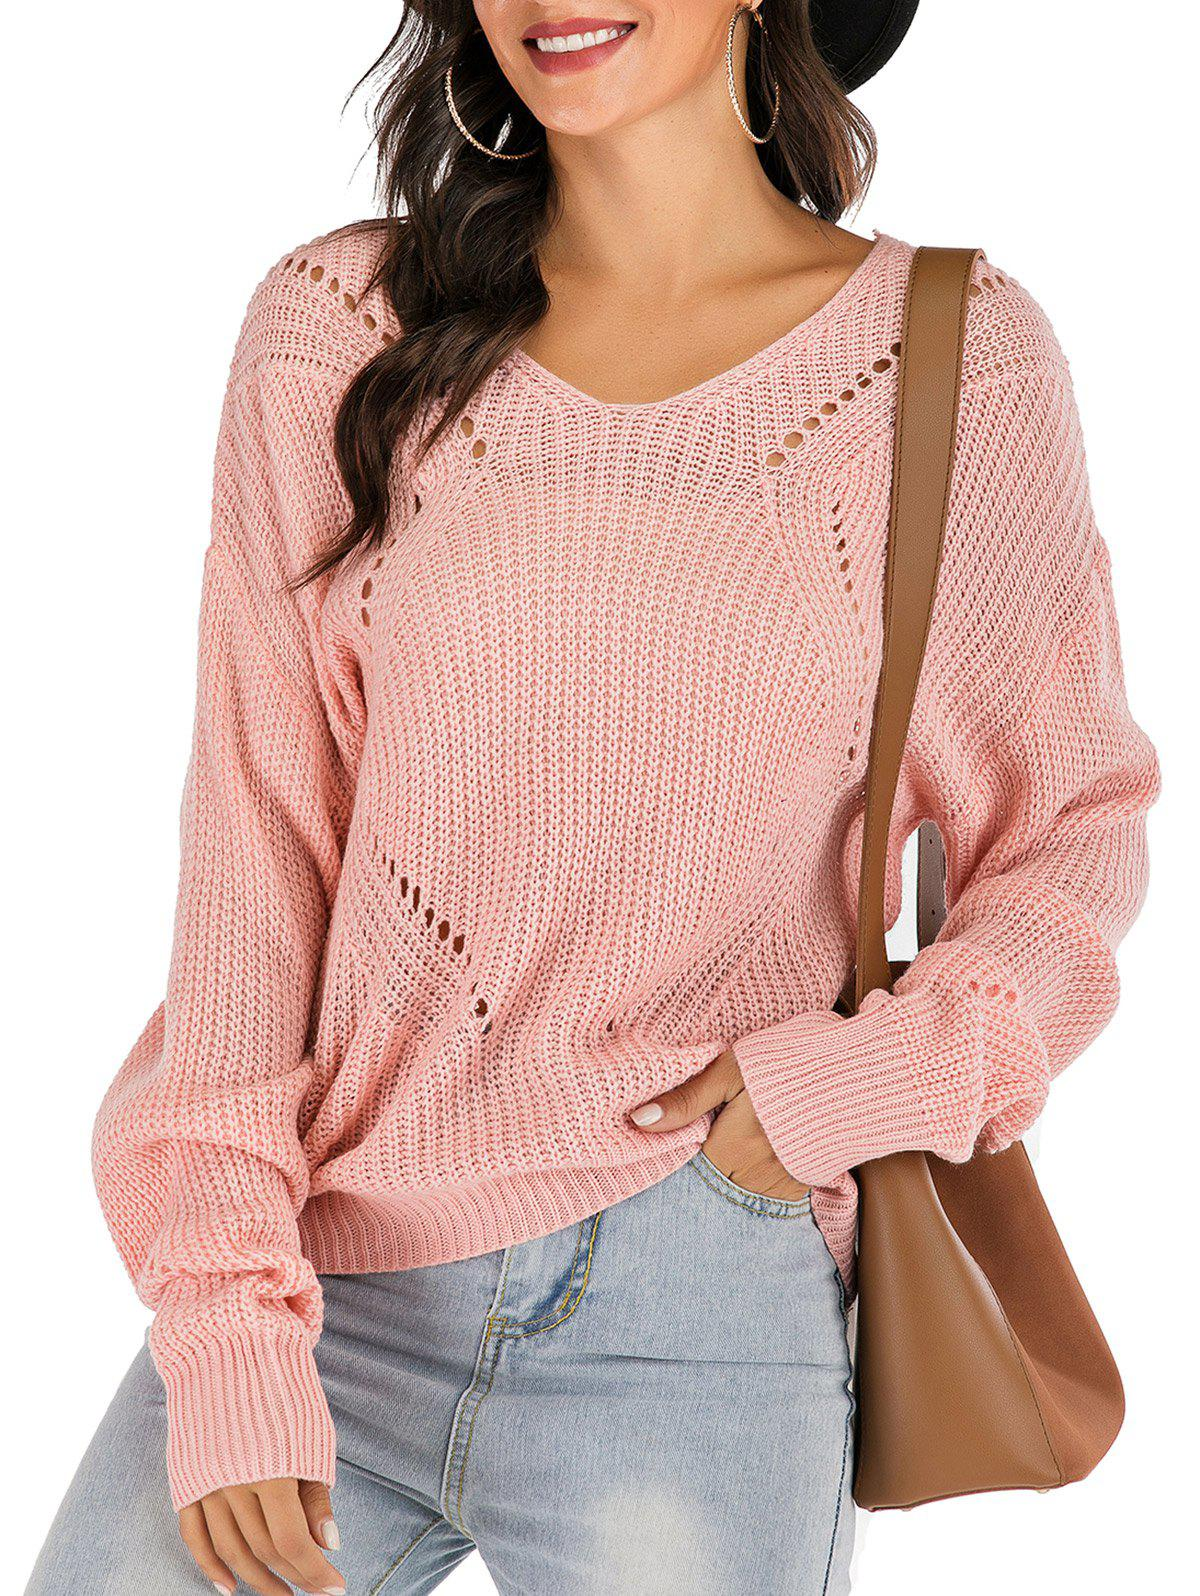 V Neck Lace-up Open Knit Ribbed Sweater - PINK S